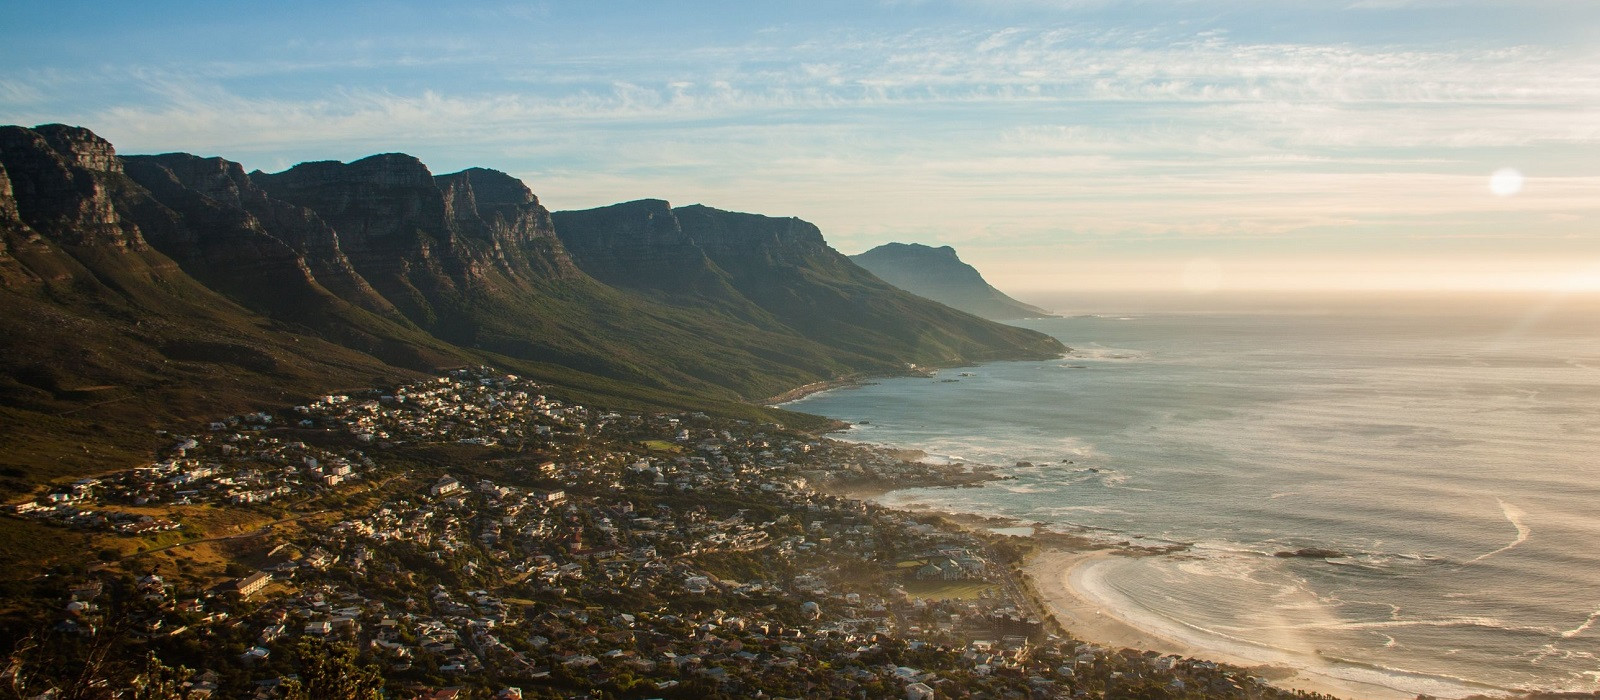 South Africa: Western Cape Overland Tour Trip 1